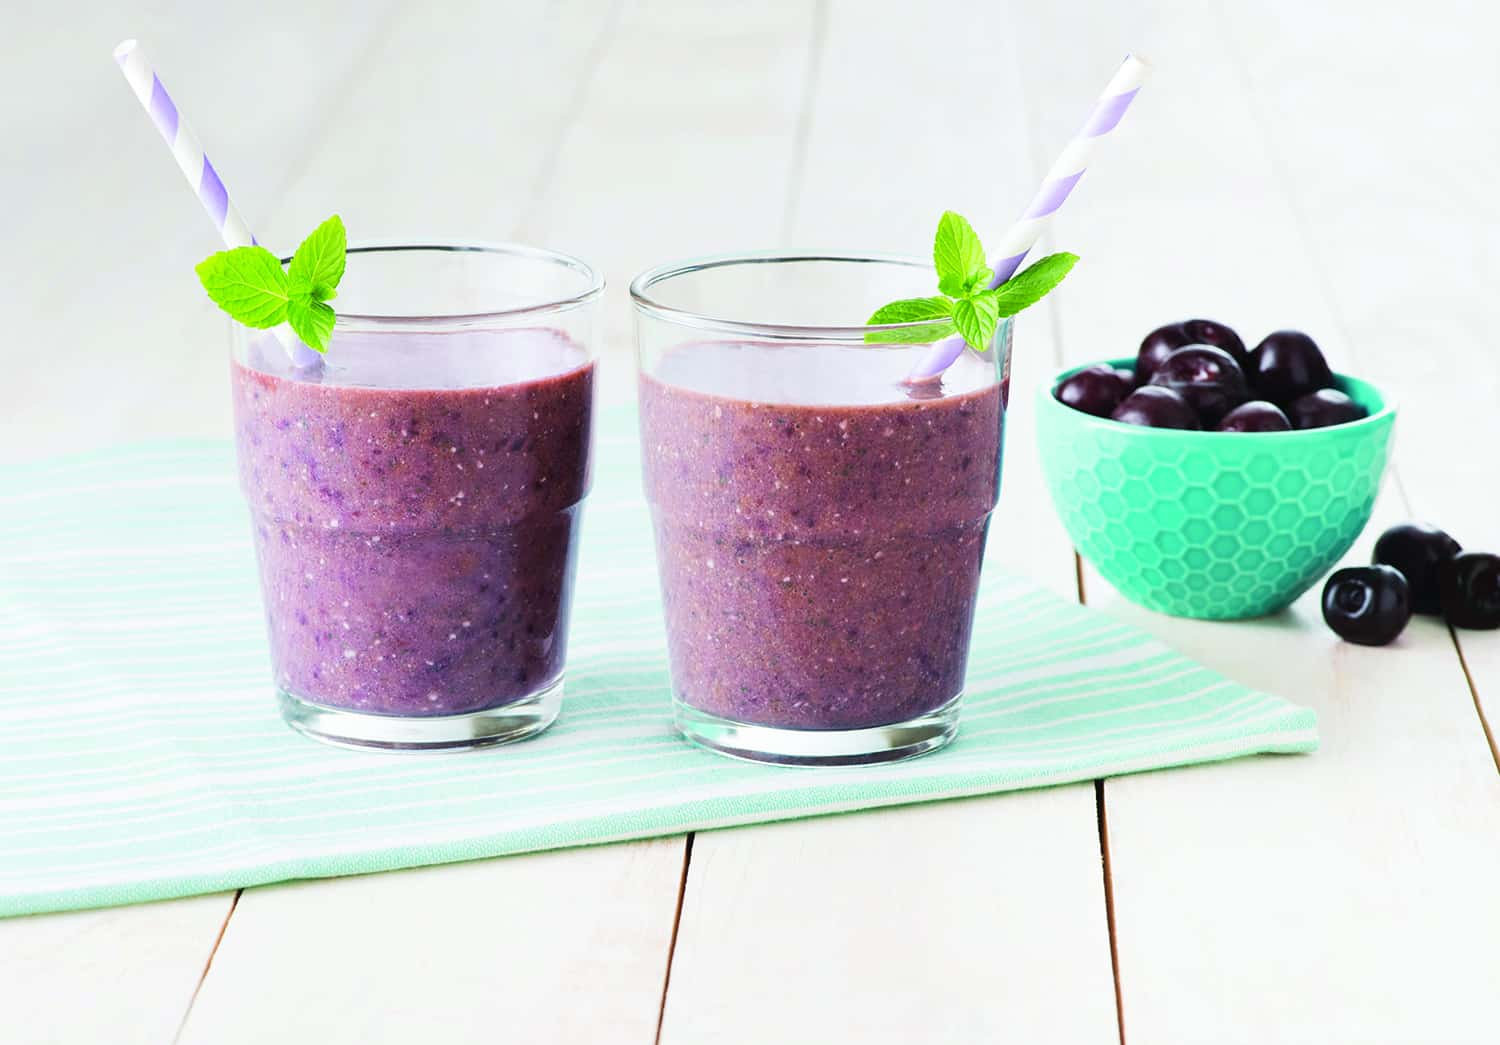 Okanagan Cherry Mint Smoothie